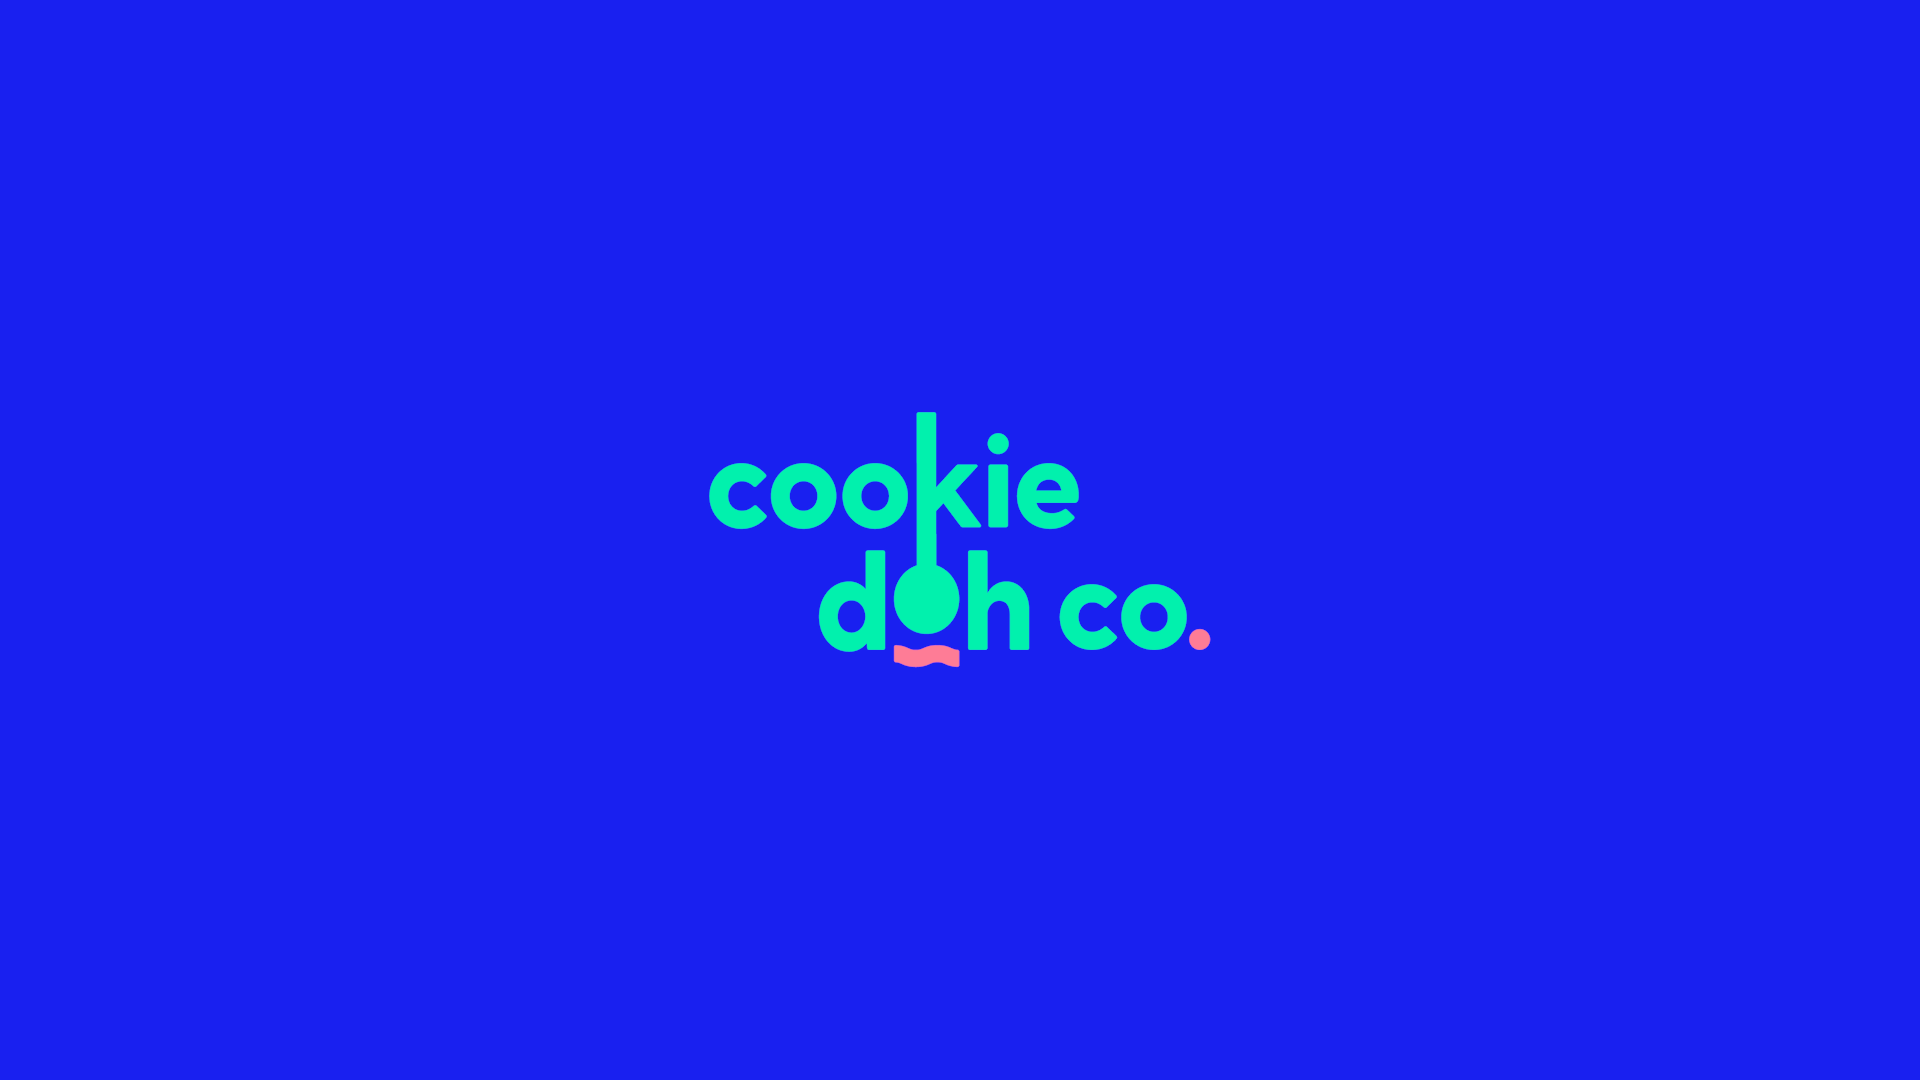 COOKIE DOH